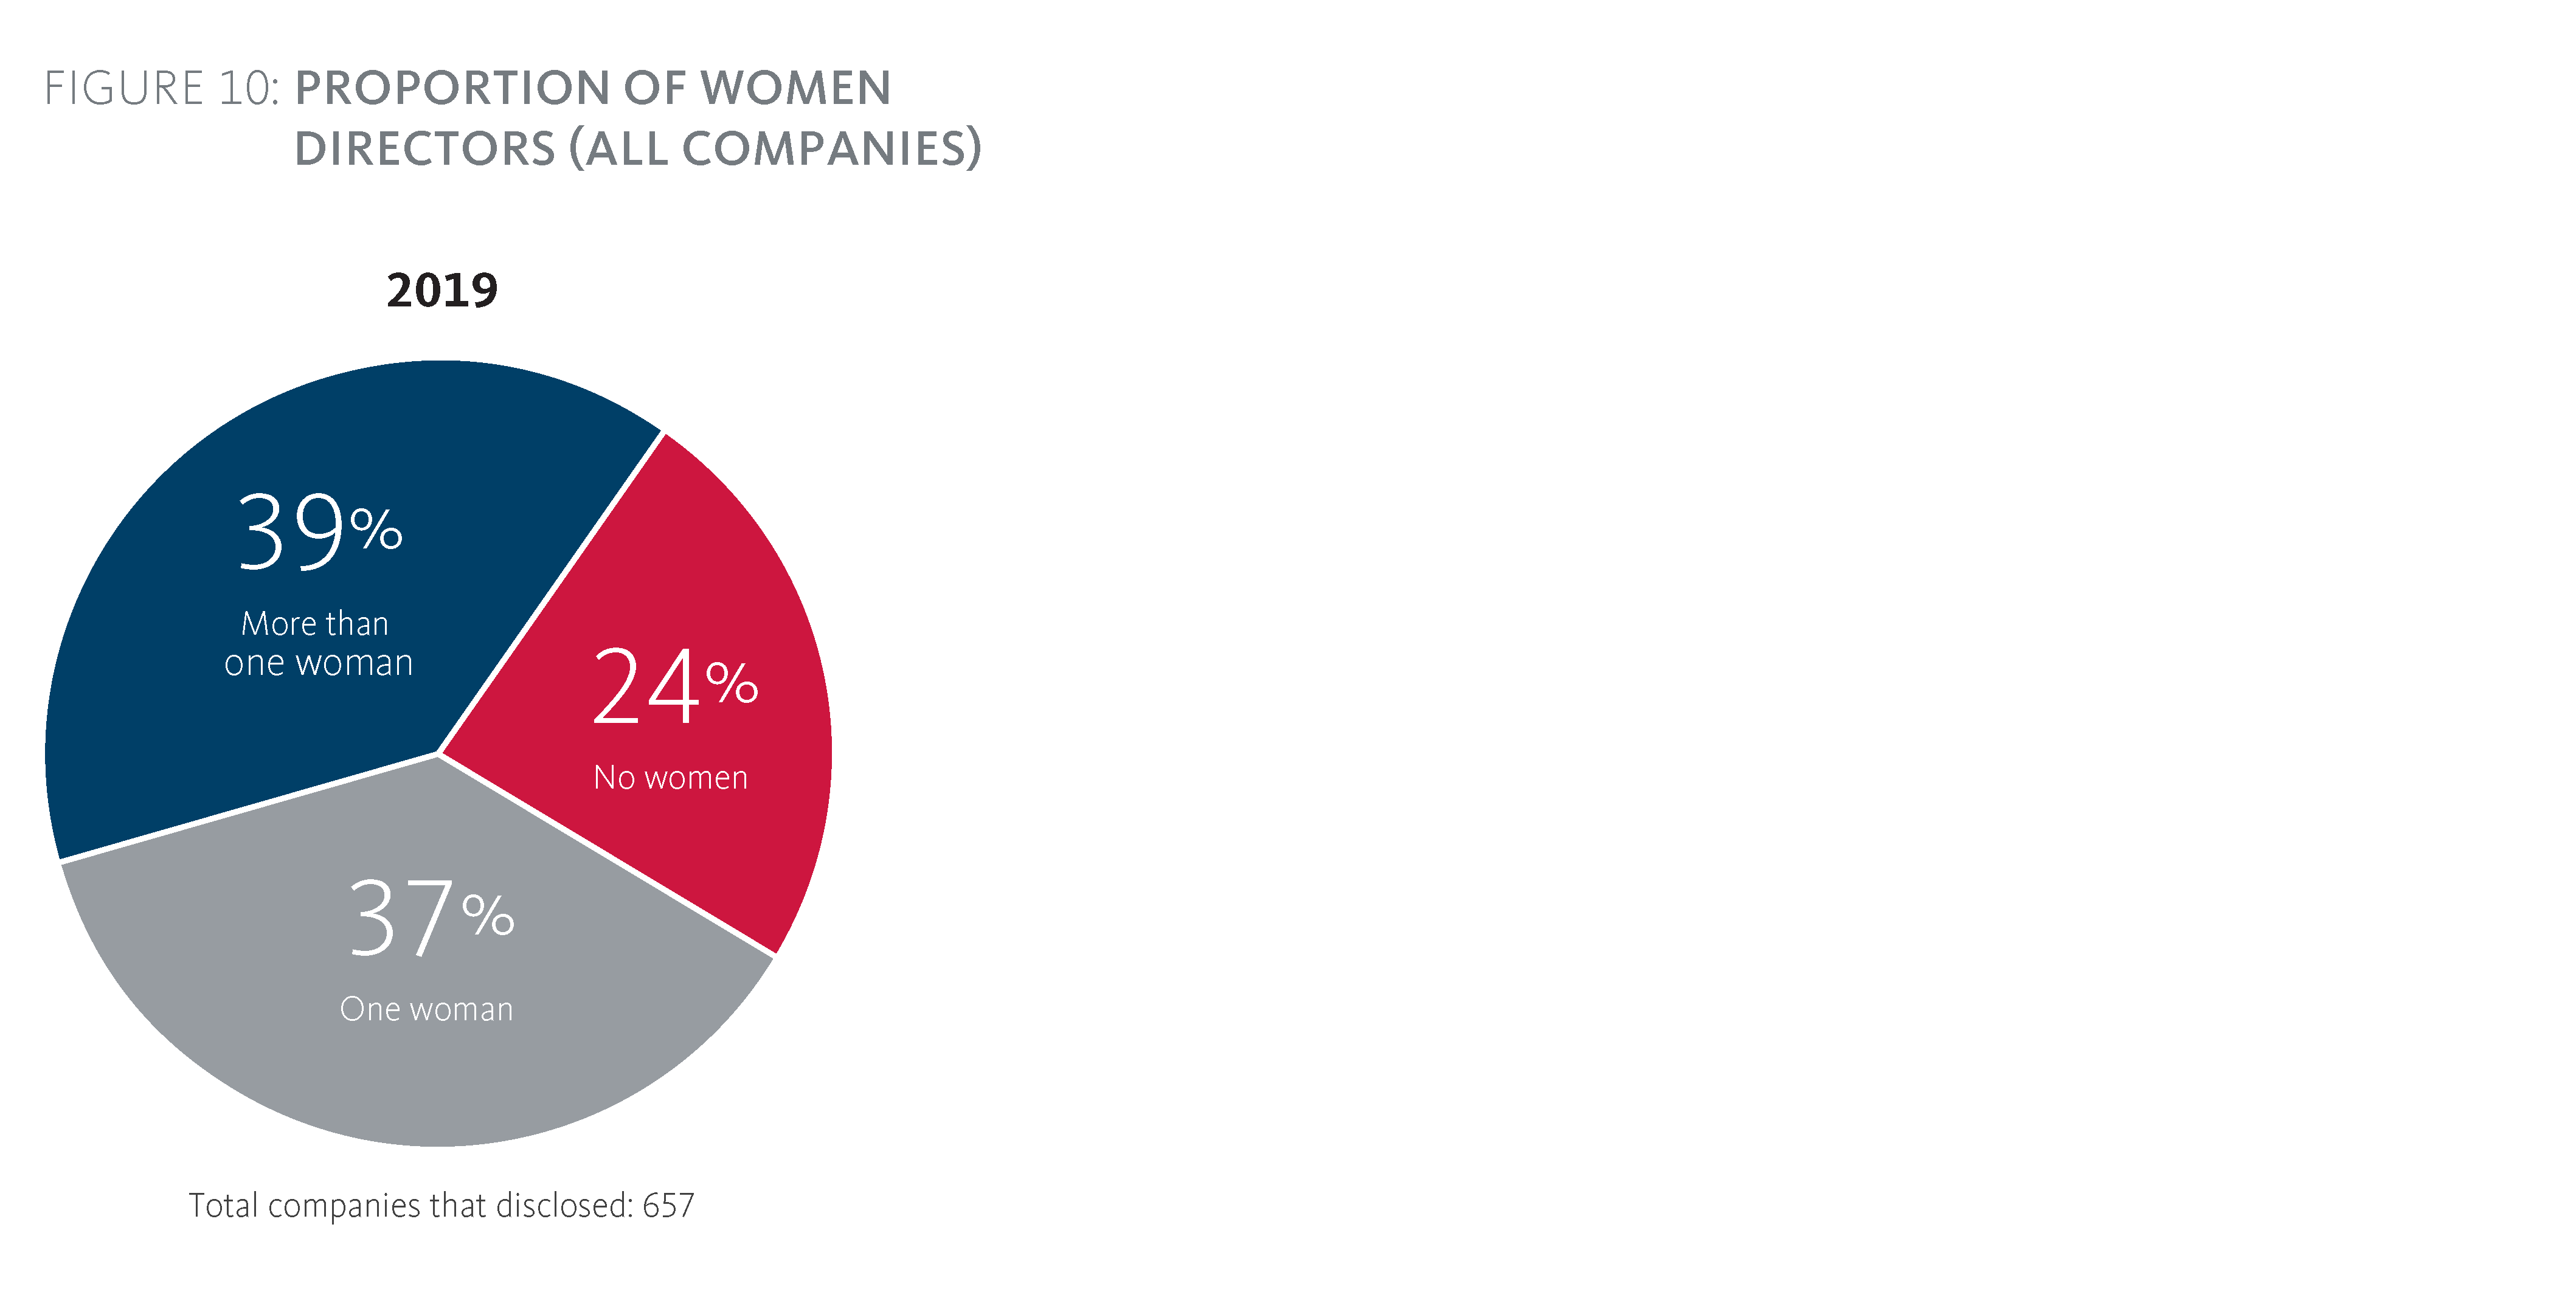 Proportion of women directors (all companies)